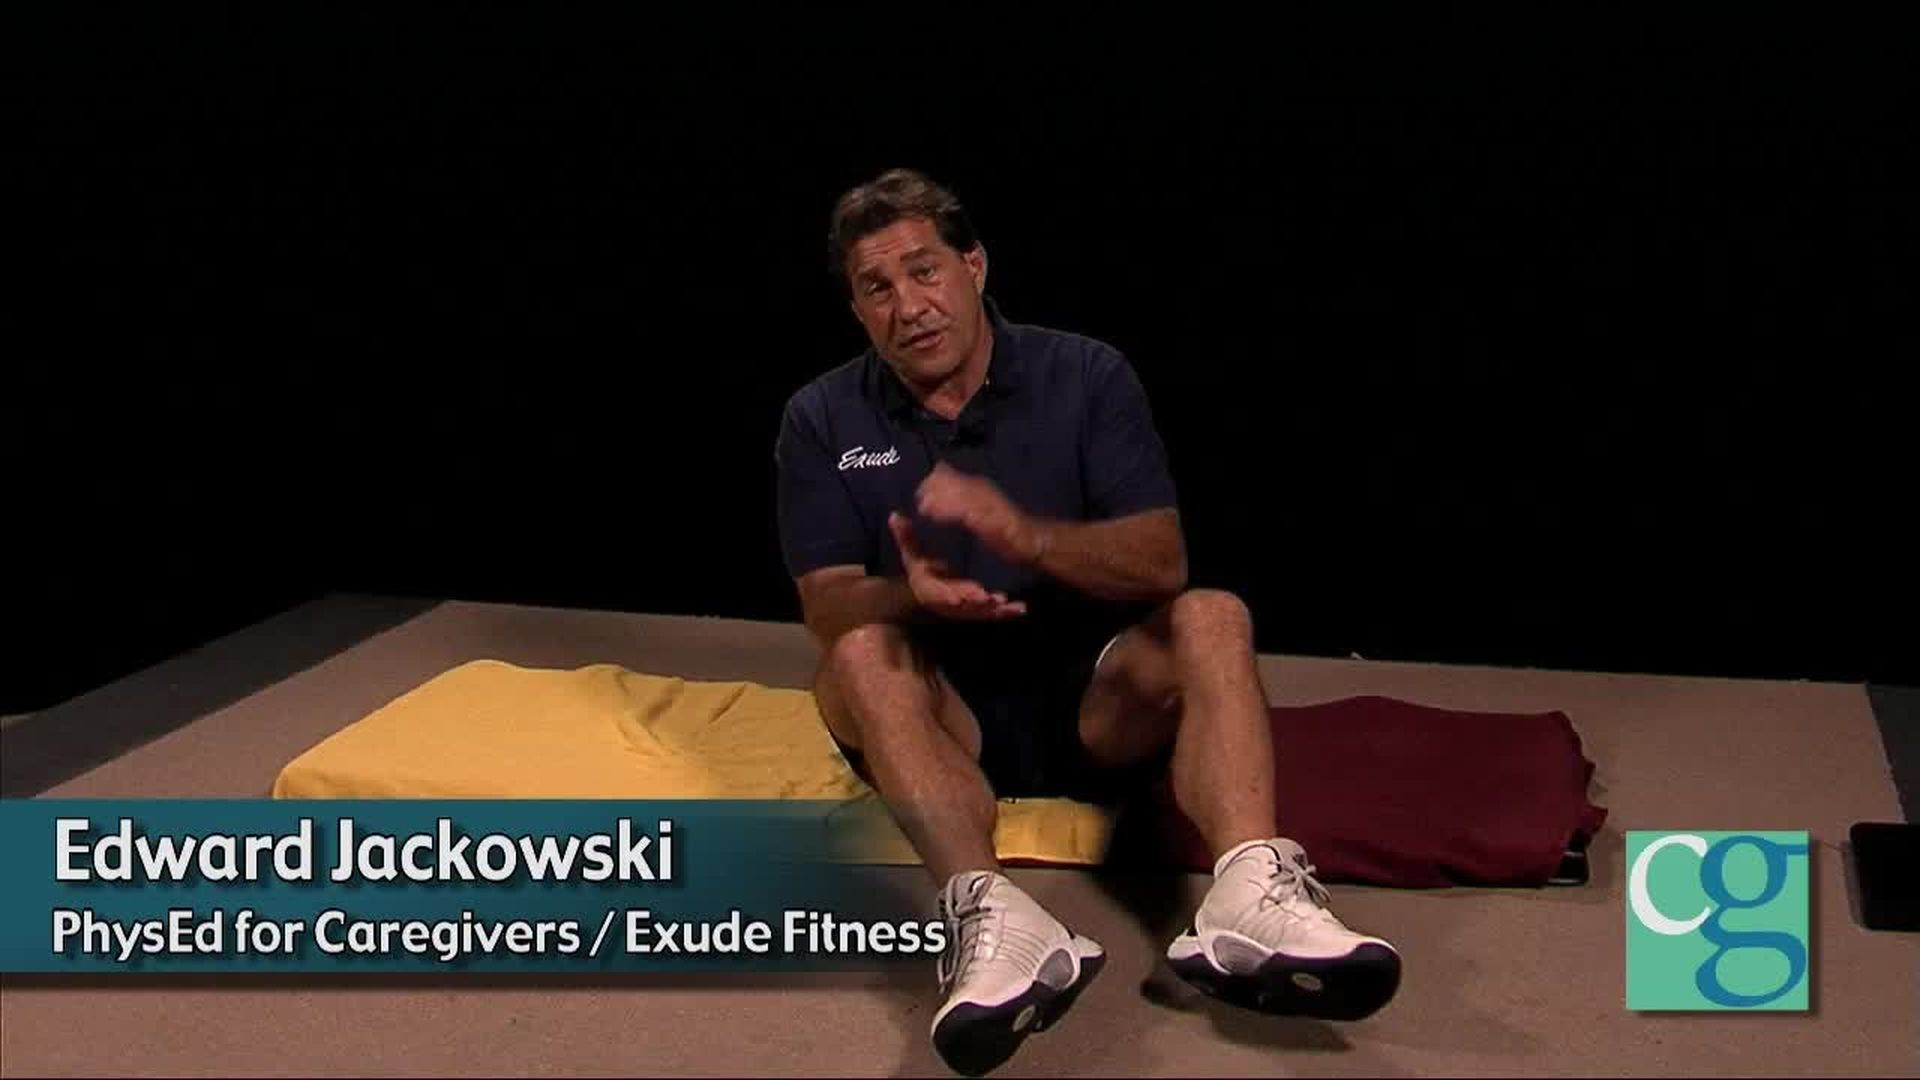 How to get rid of your muffin top - PhysEd for Caregivers